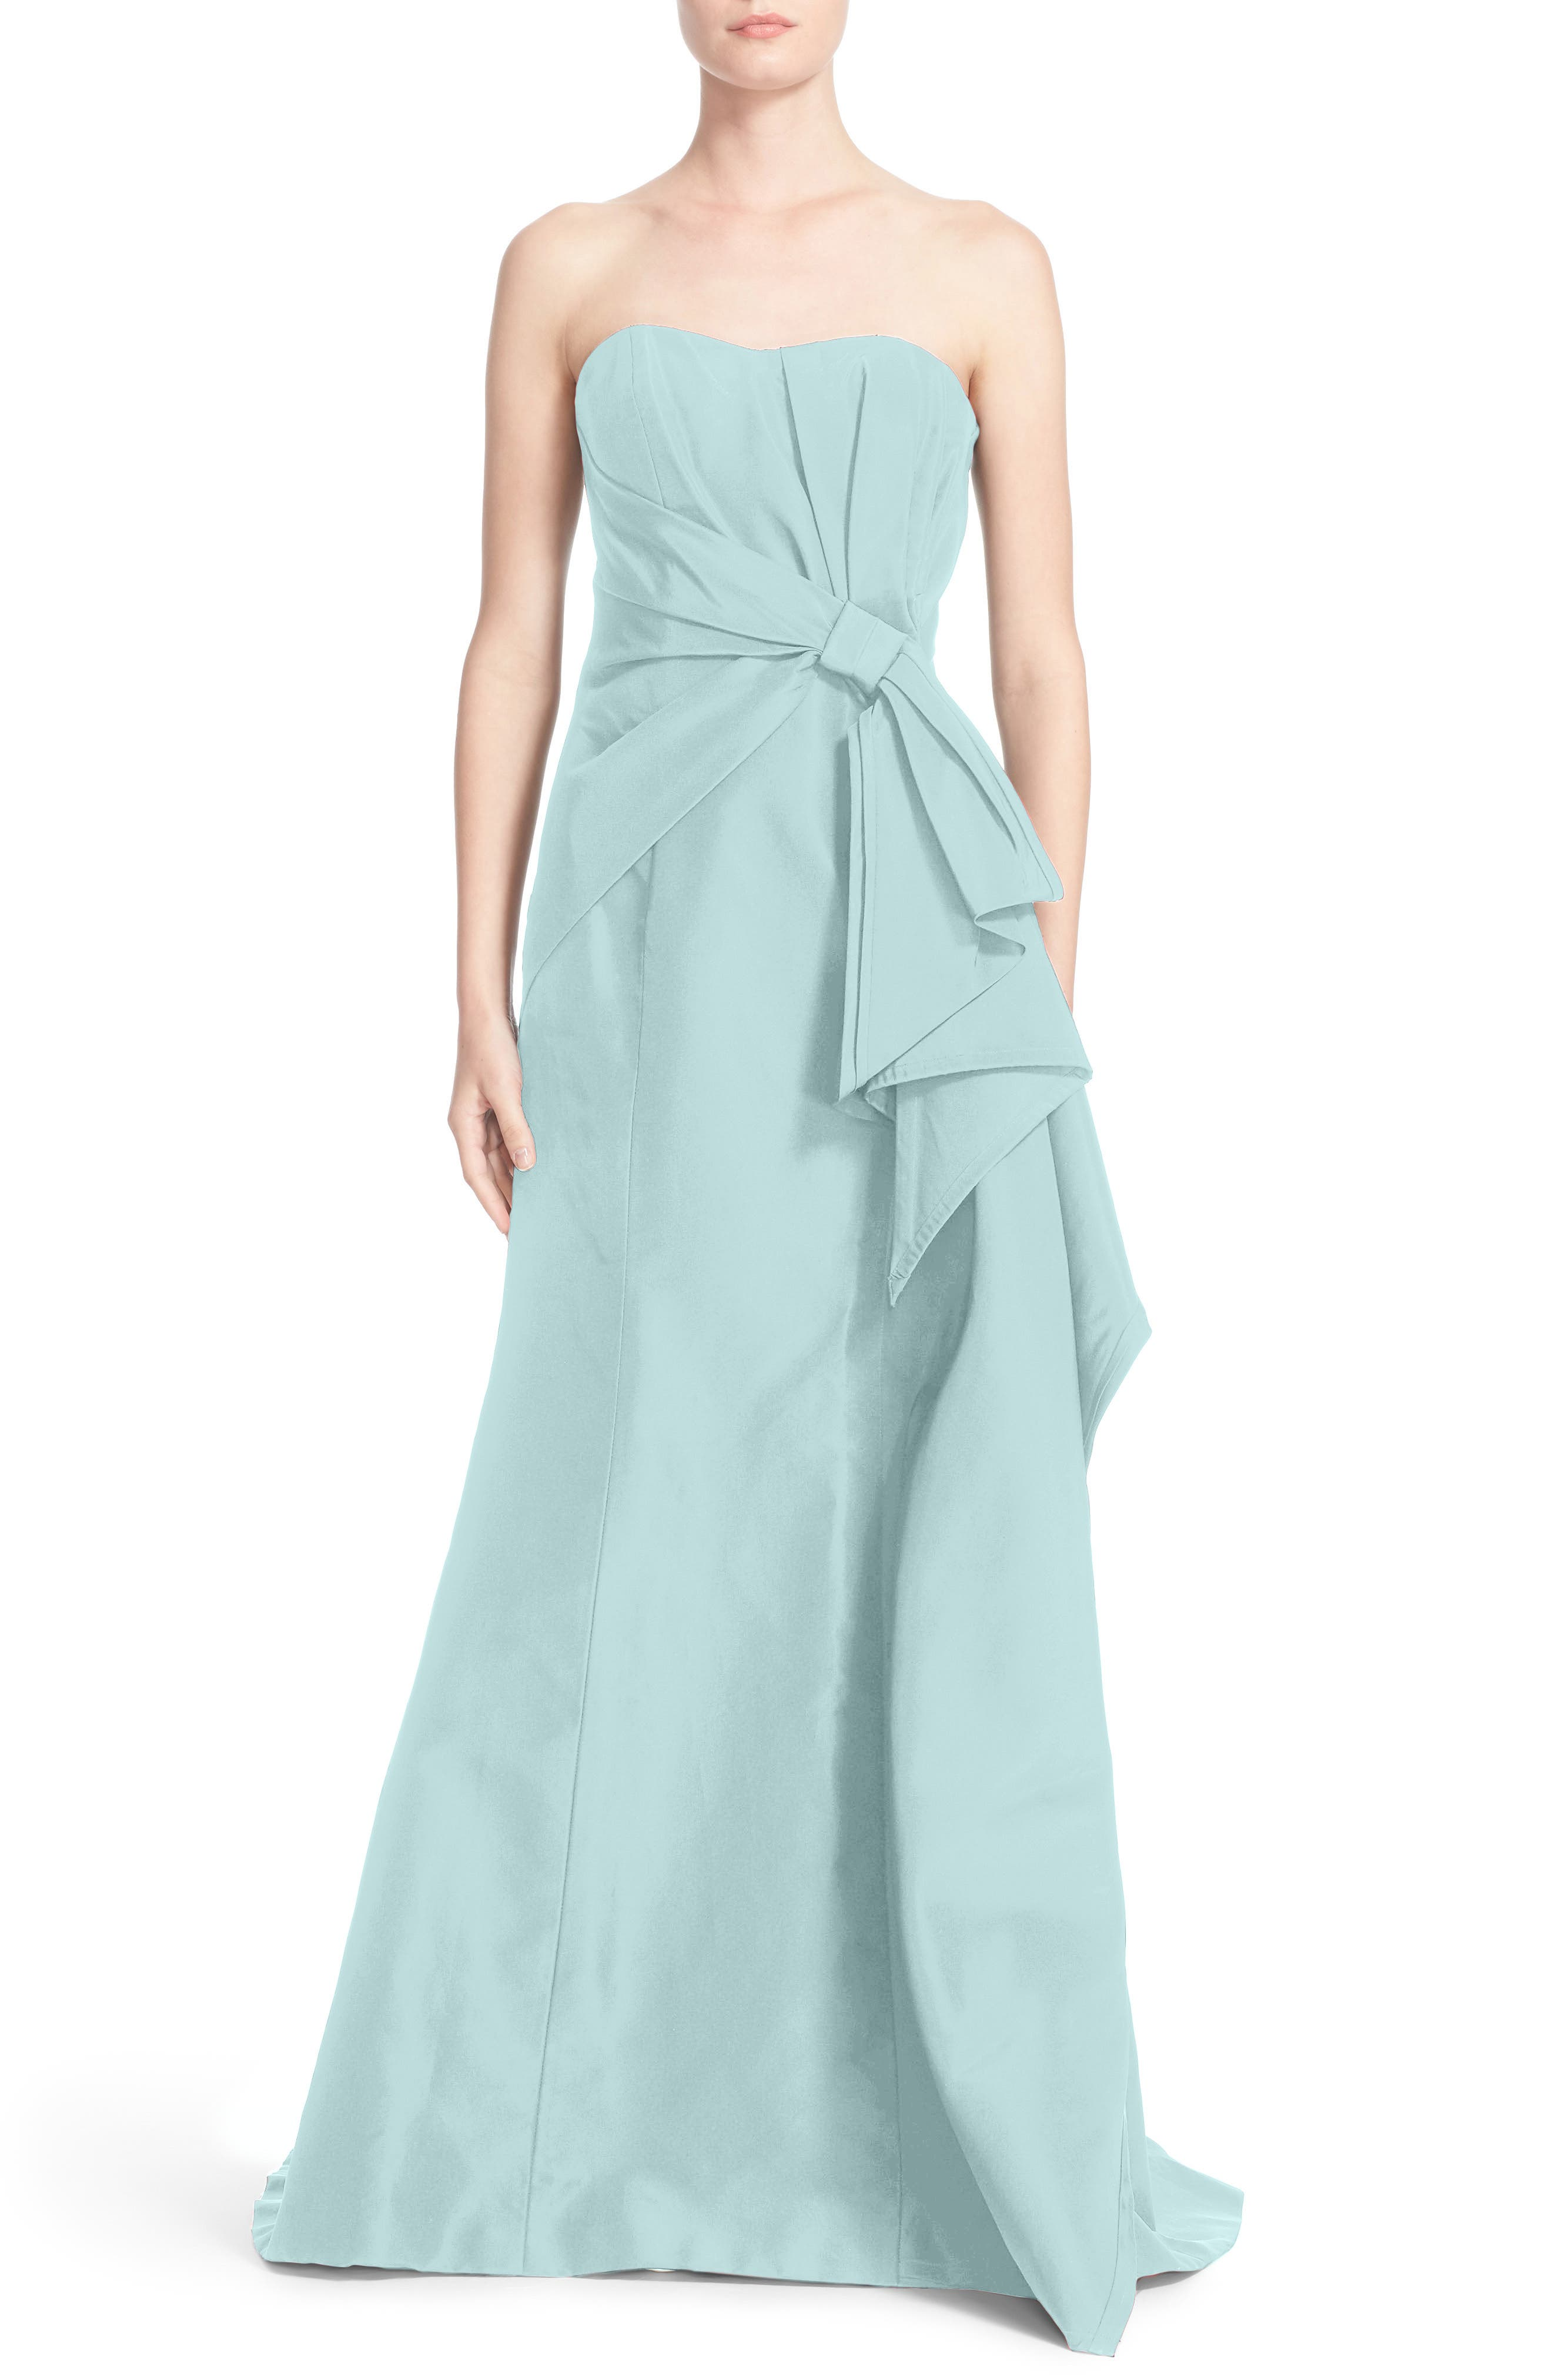 Bow Detail Strapless Silk Faille Gown,                         Main,                         color, Stone Blue